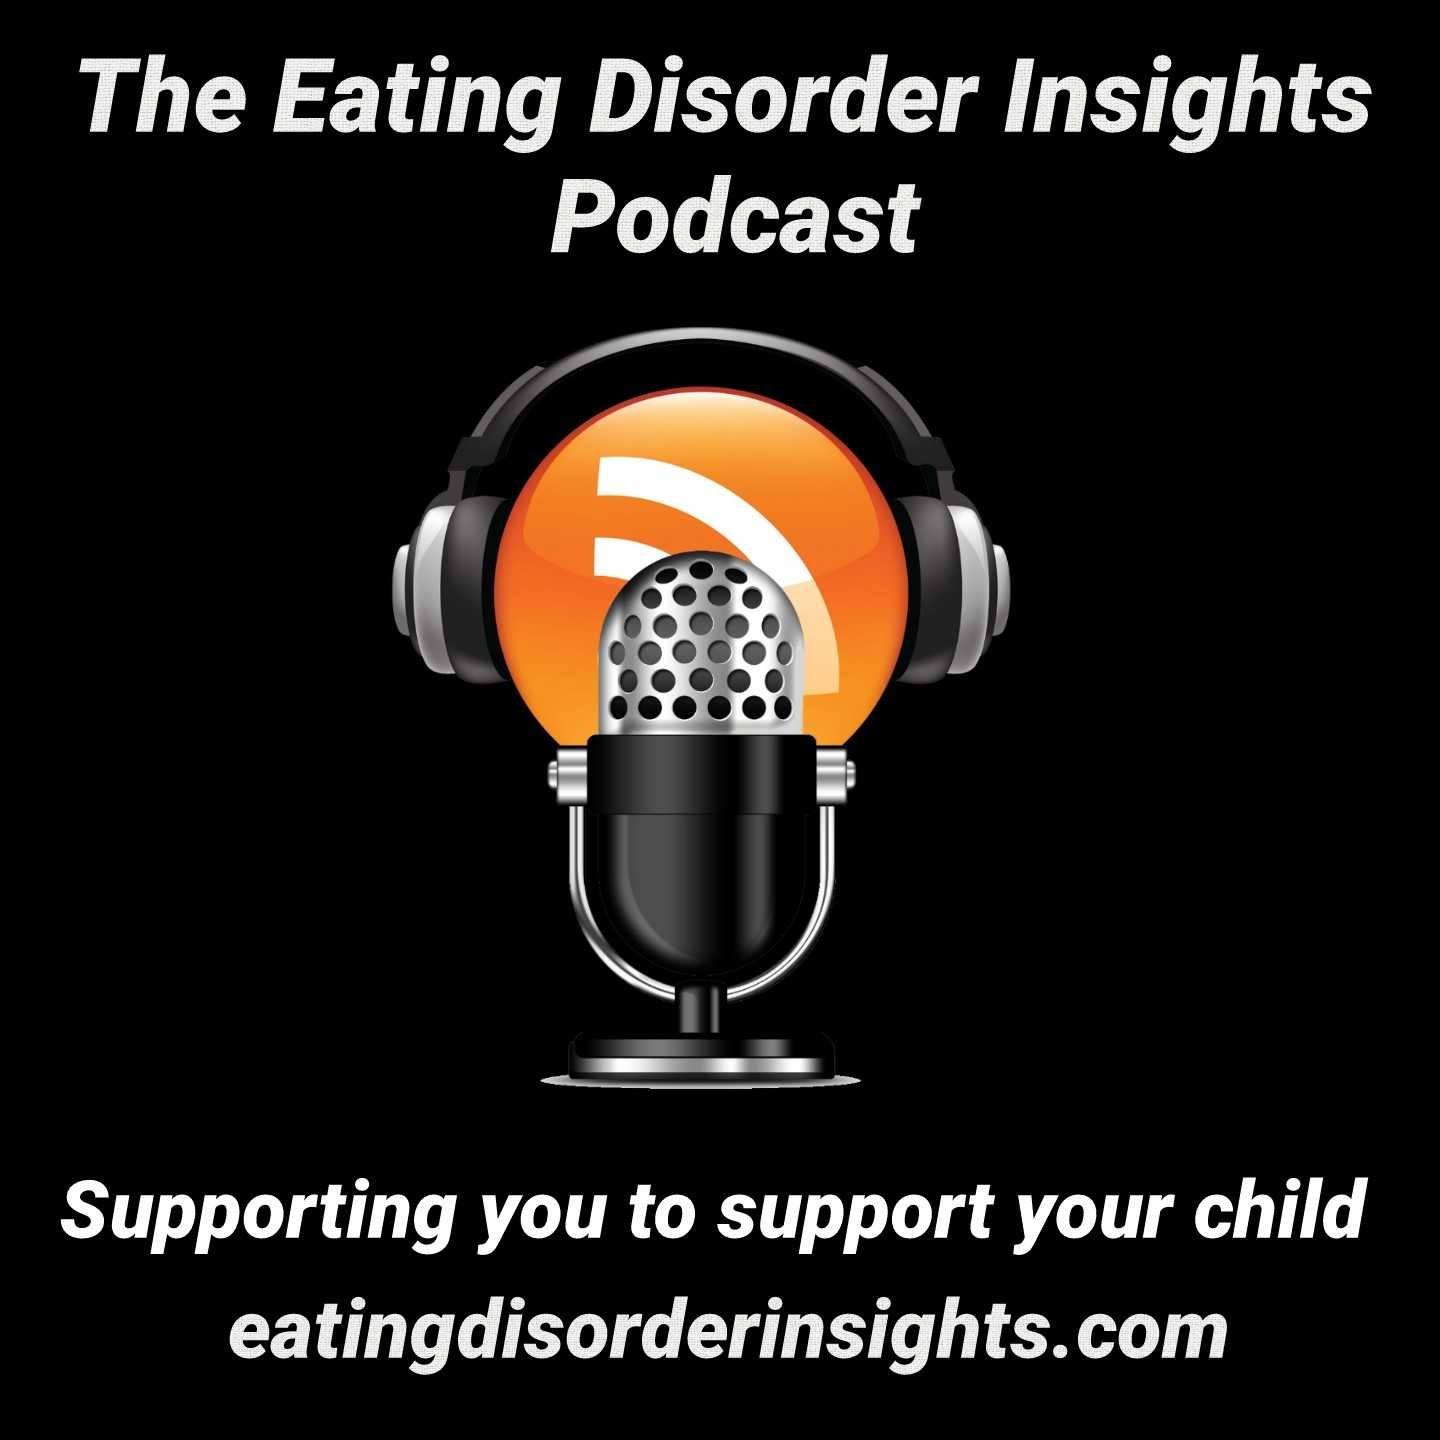 Eating Disorder Insights Podcast  Episode 1  Setting the scene for the series..